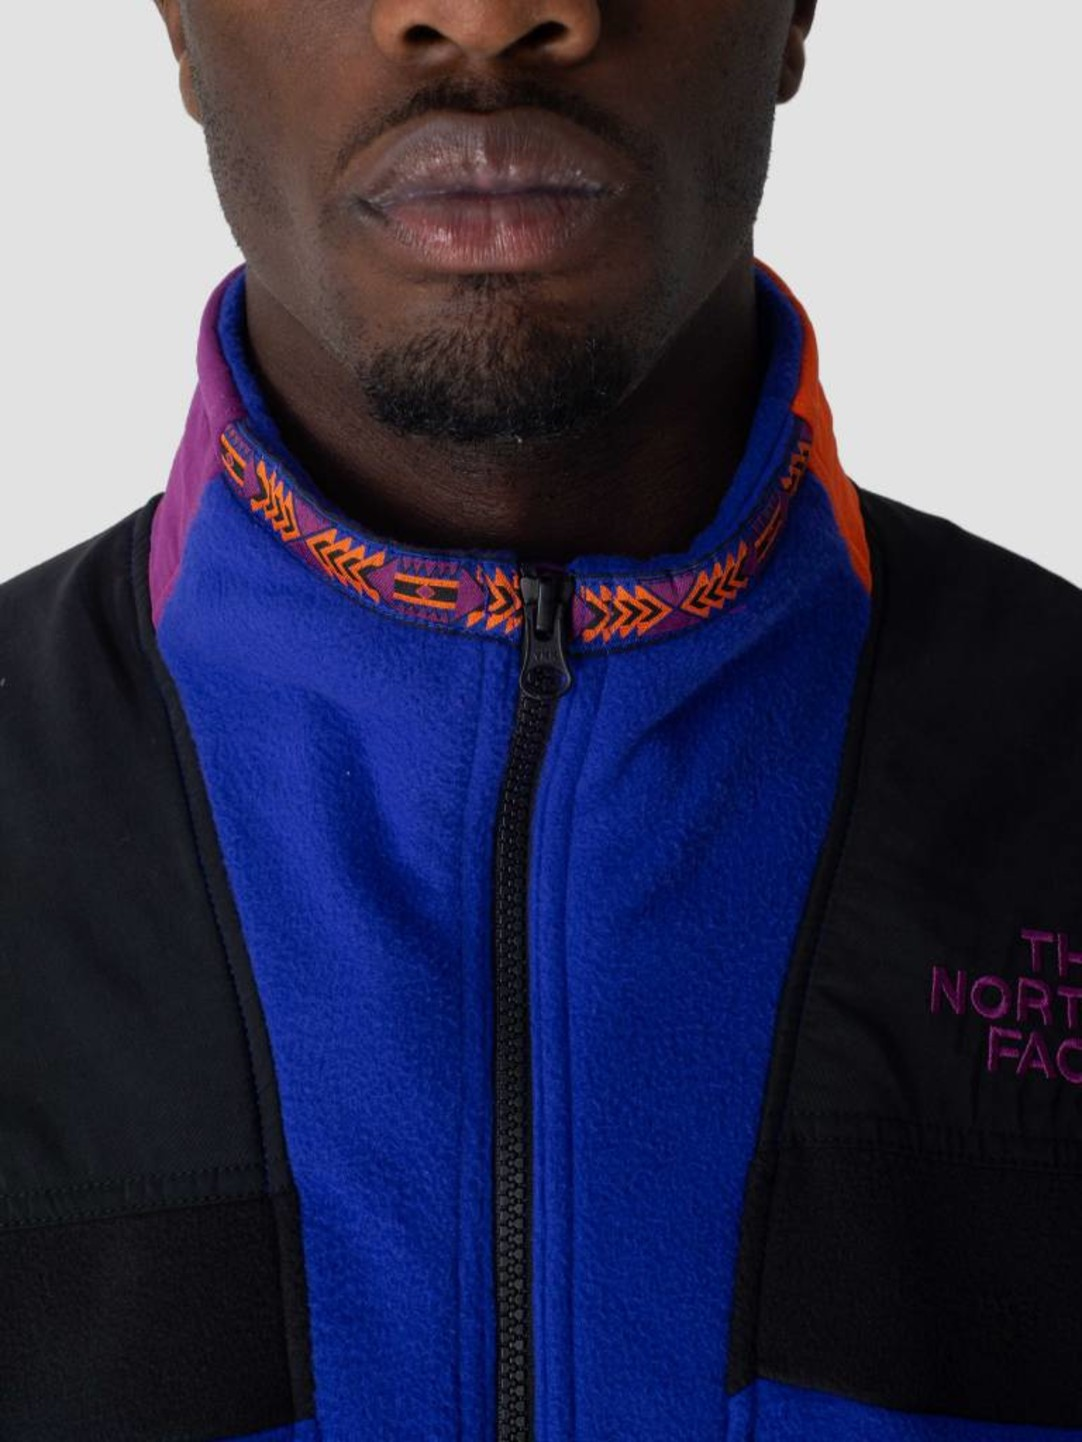 The North Face The North Face 92 Rage Flec Anrk Aztec Blue Rag T93MID9QX